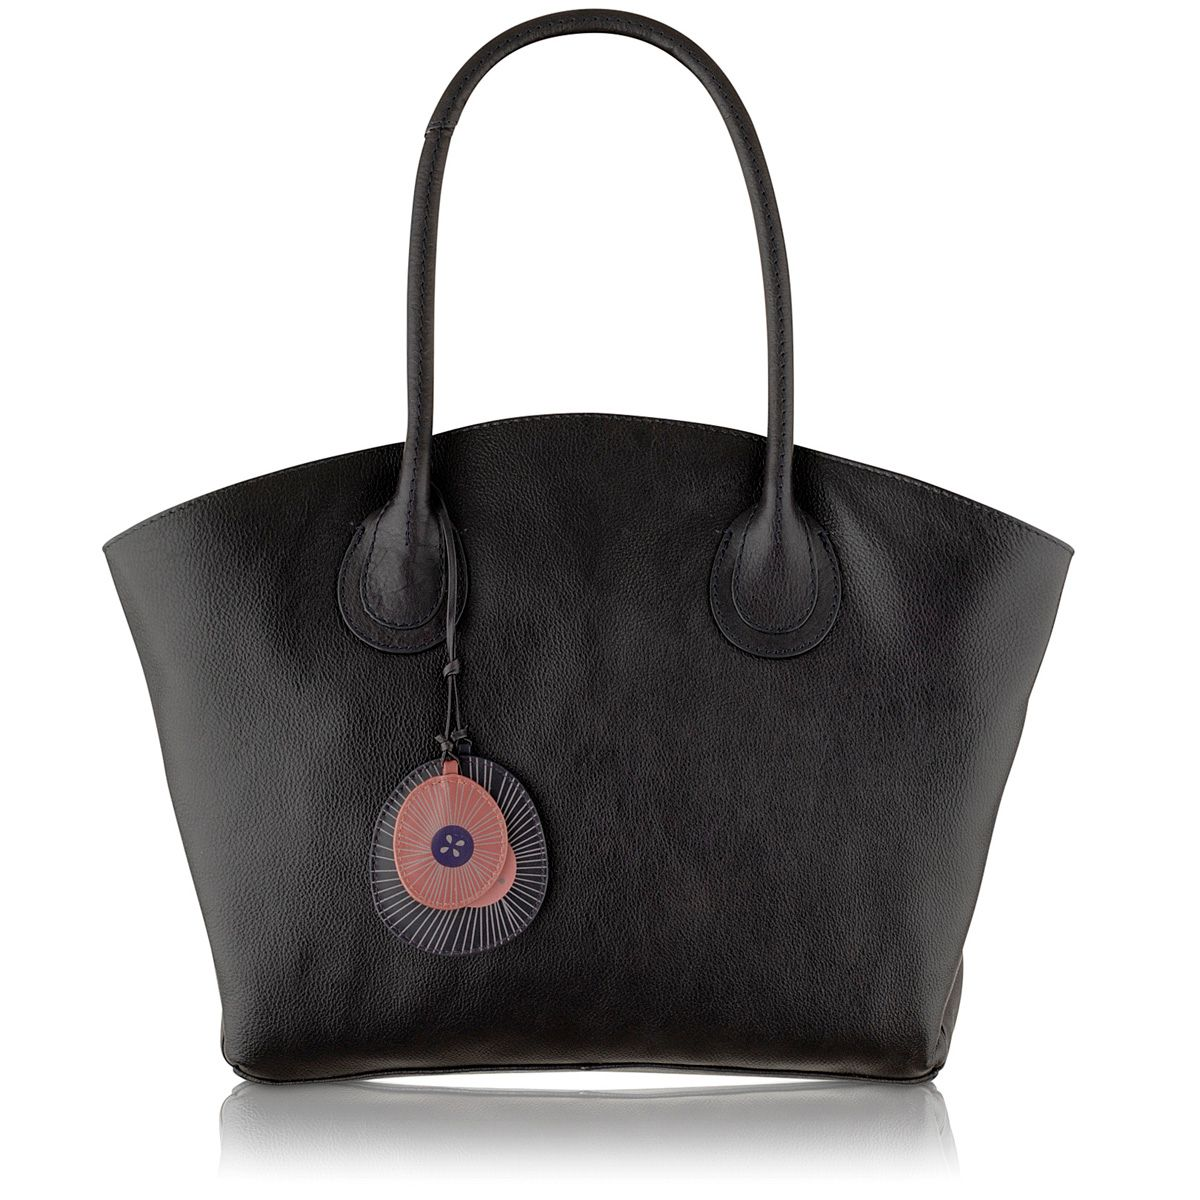 Overton navy large leather tote bag